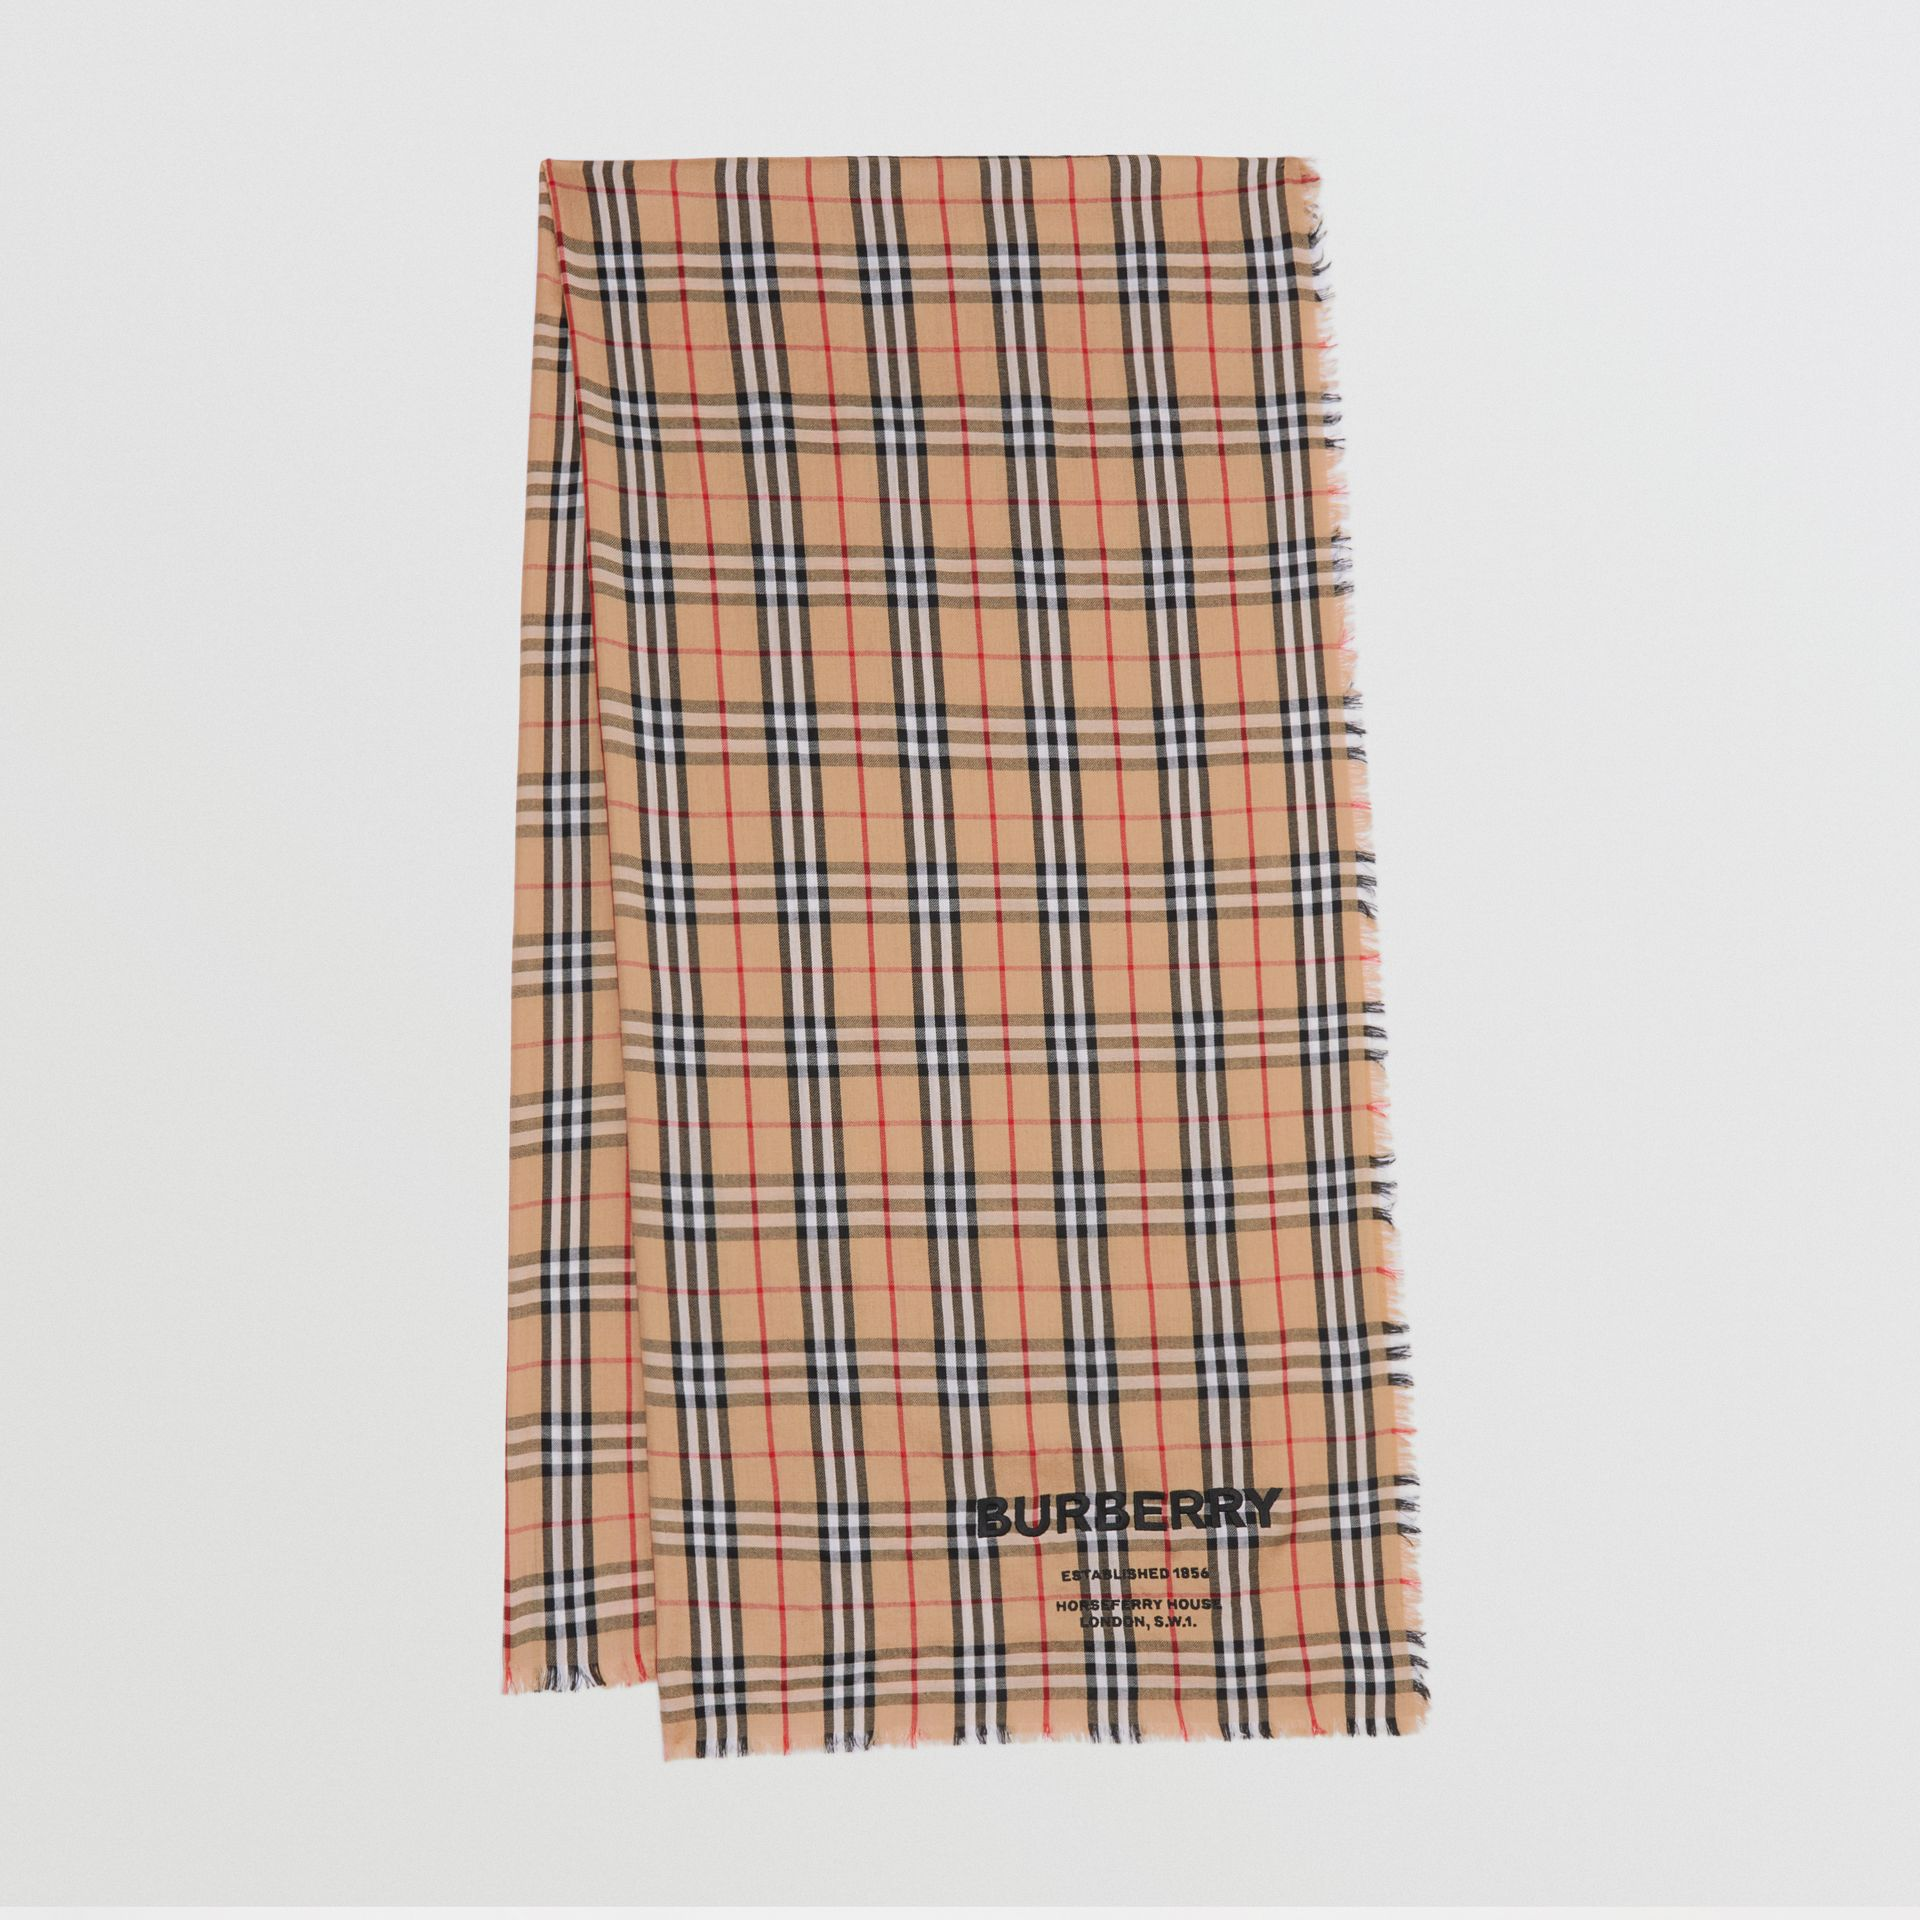 Embroidered Vintage Check Lightweight Cashmere Scarf in Camel | Burberry - gallery image 0